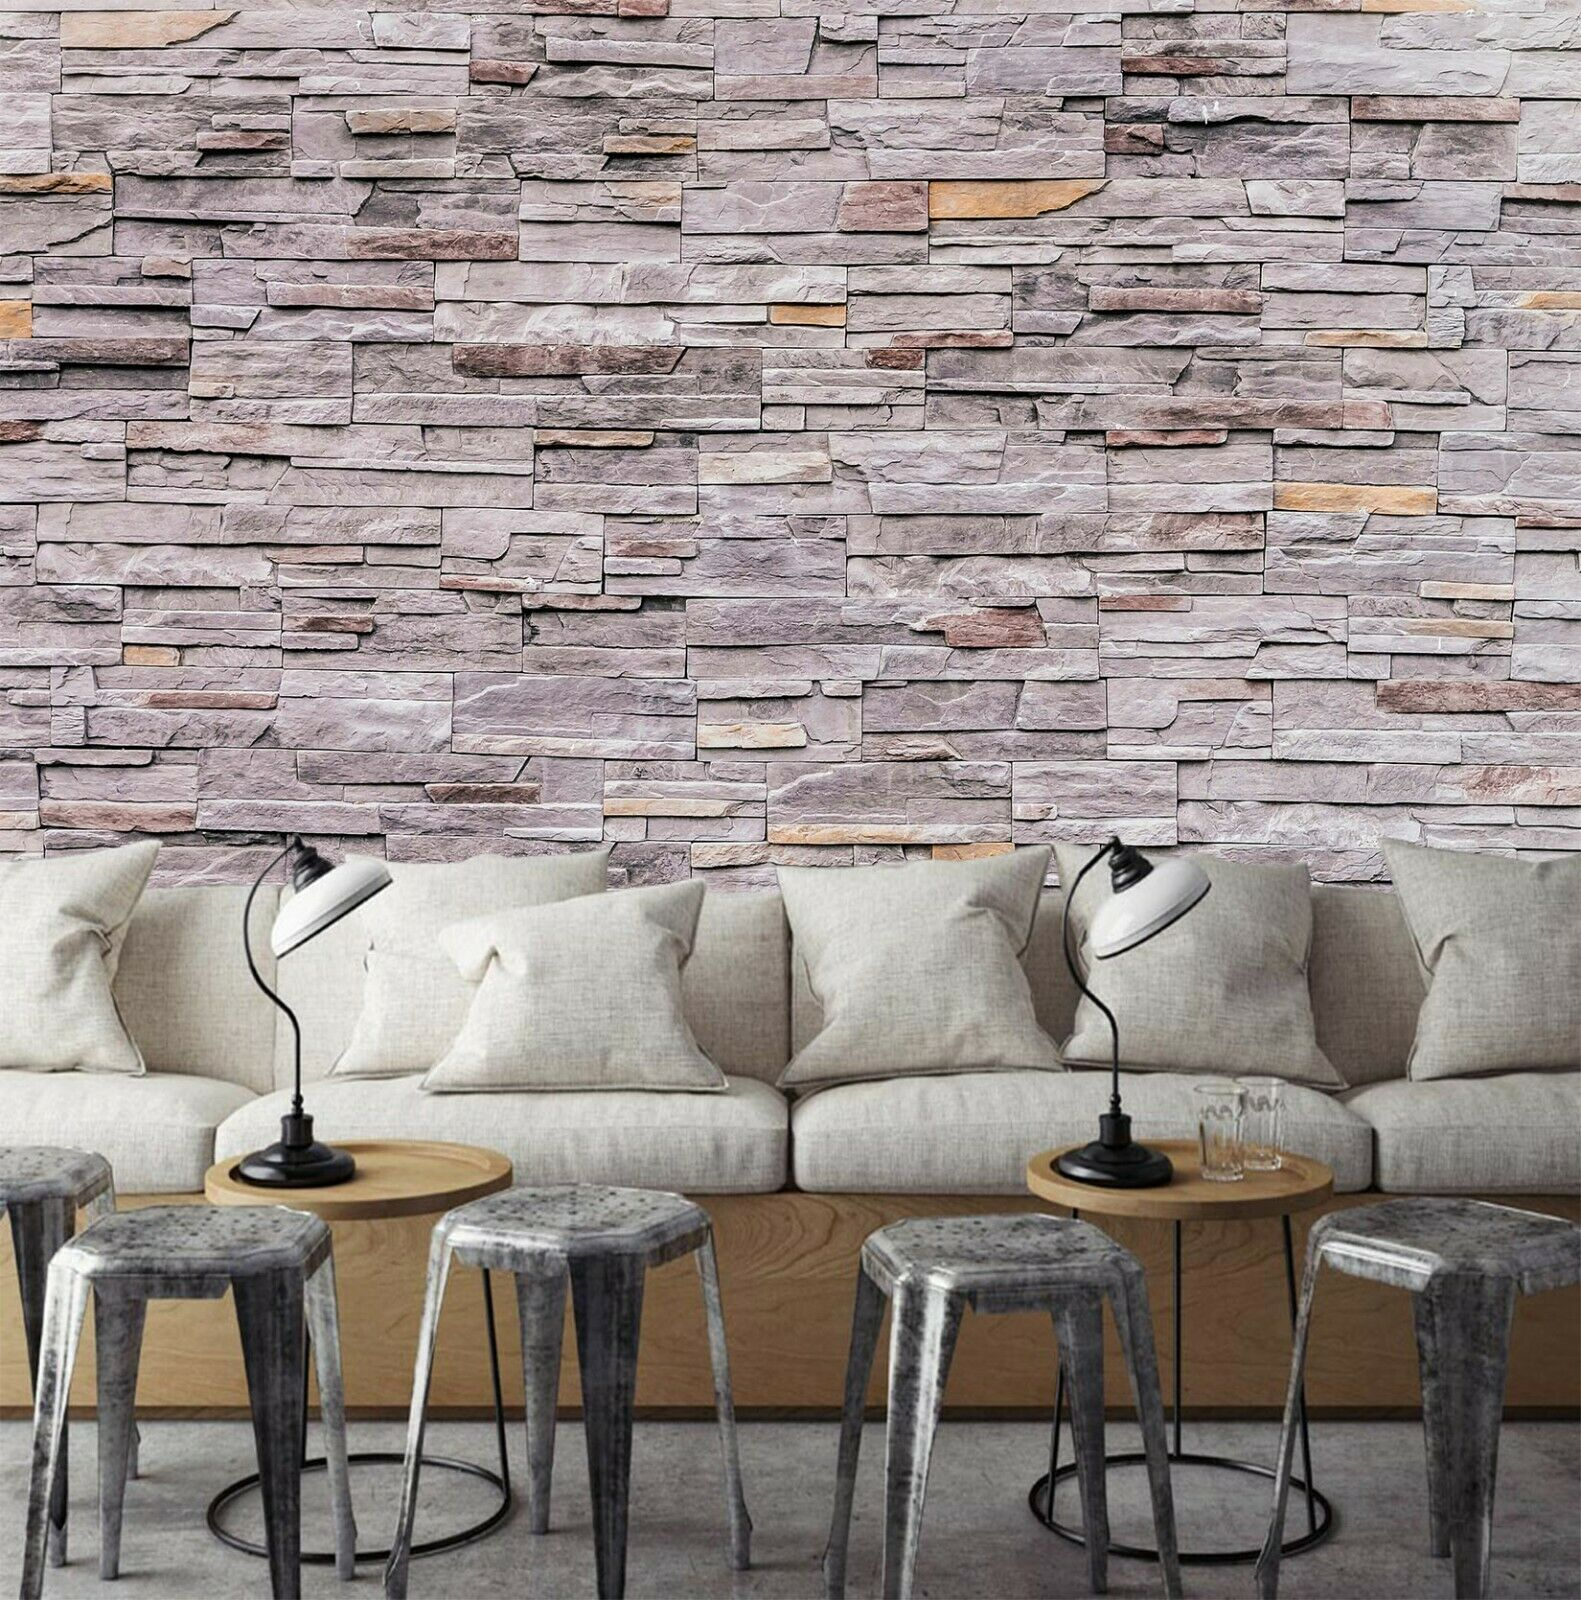 3D Brick Wall R031 Business Wallpaper Wall Mural Self-adhesive Commerce Amy